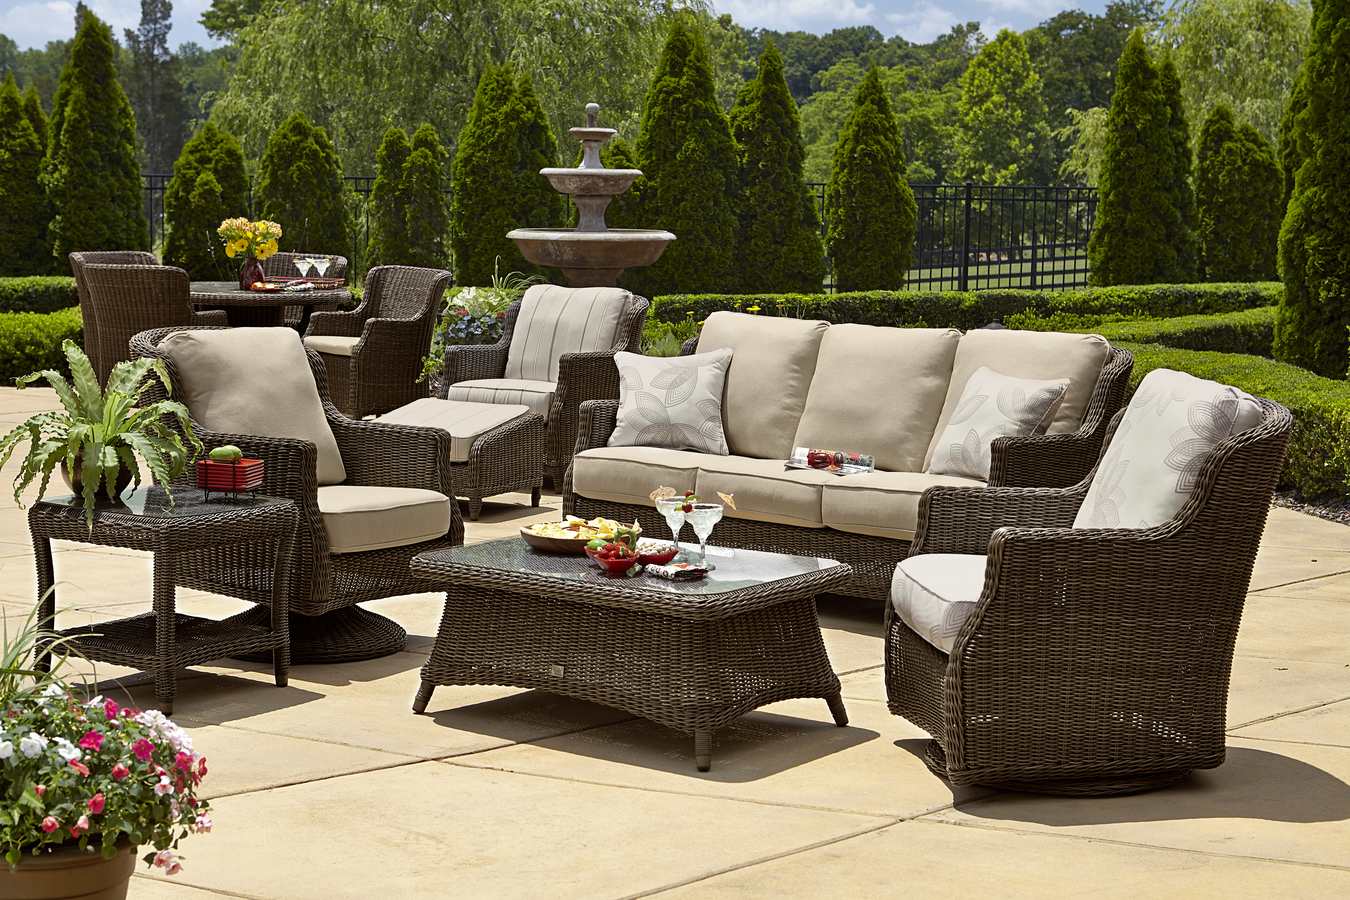 Rattan Seating Group brighton outdoor patio wicker furniture | 9858 by beachcraft GYIBWCQ